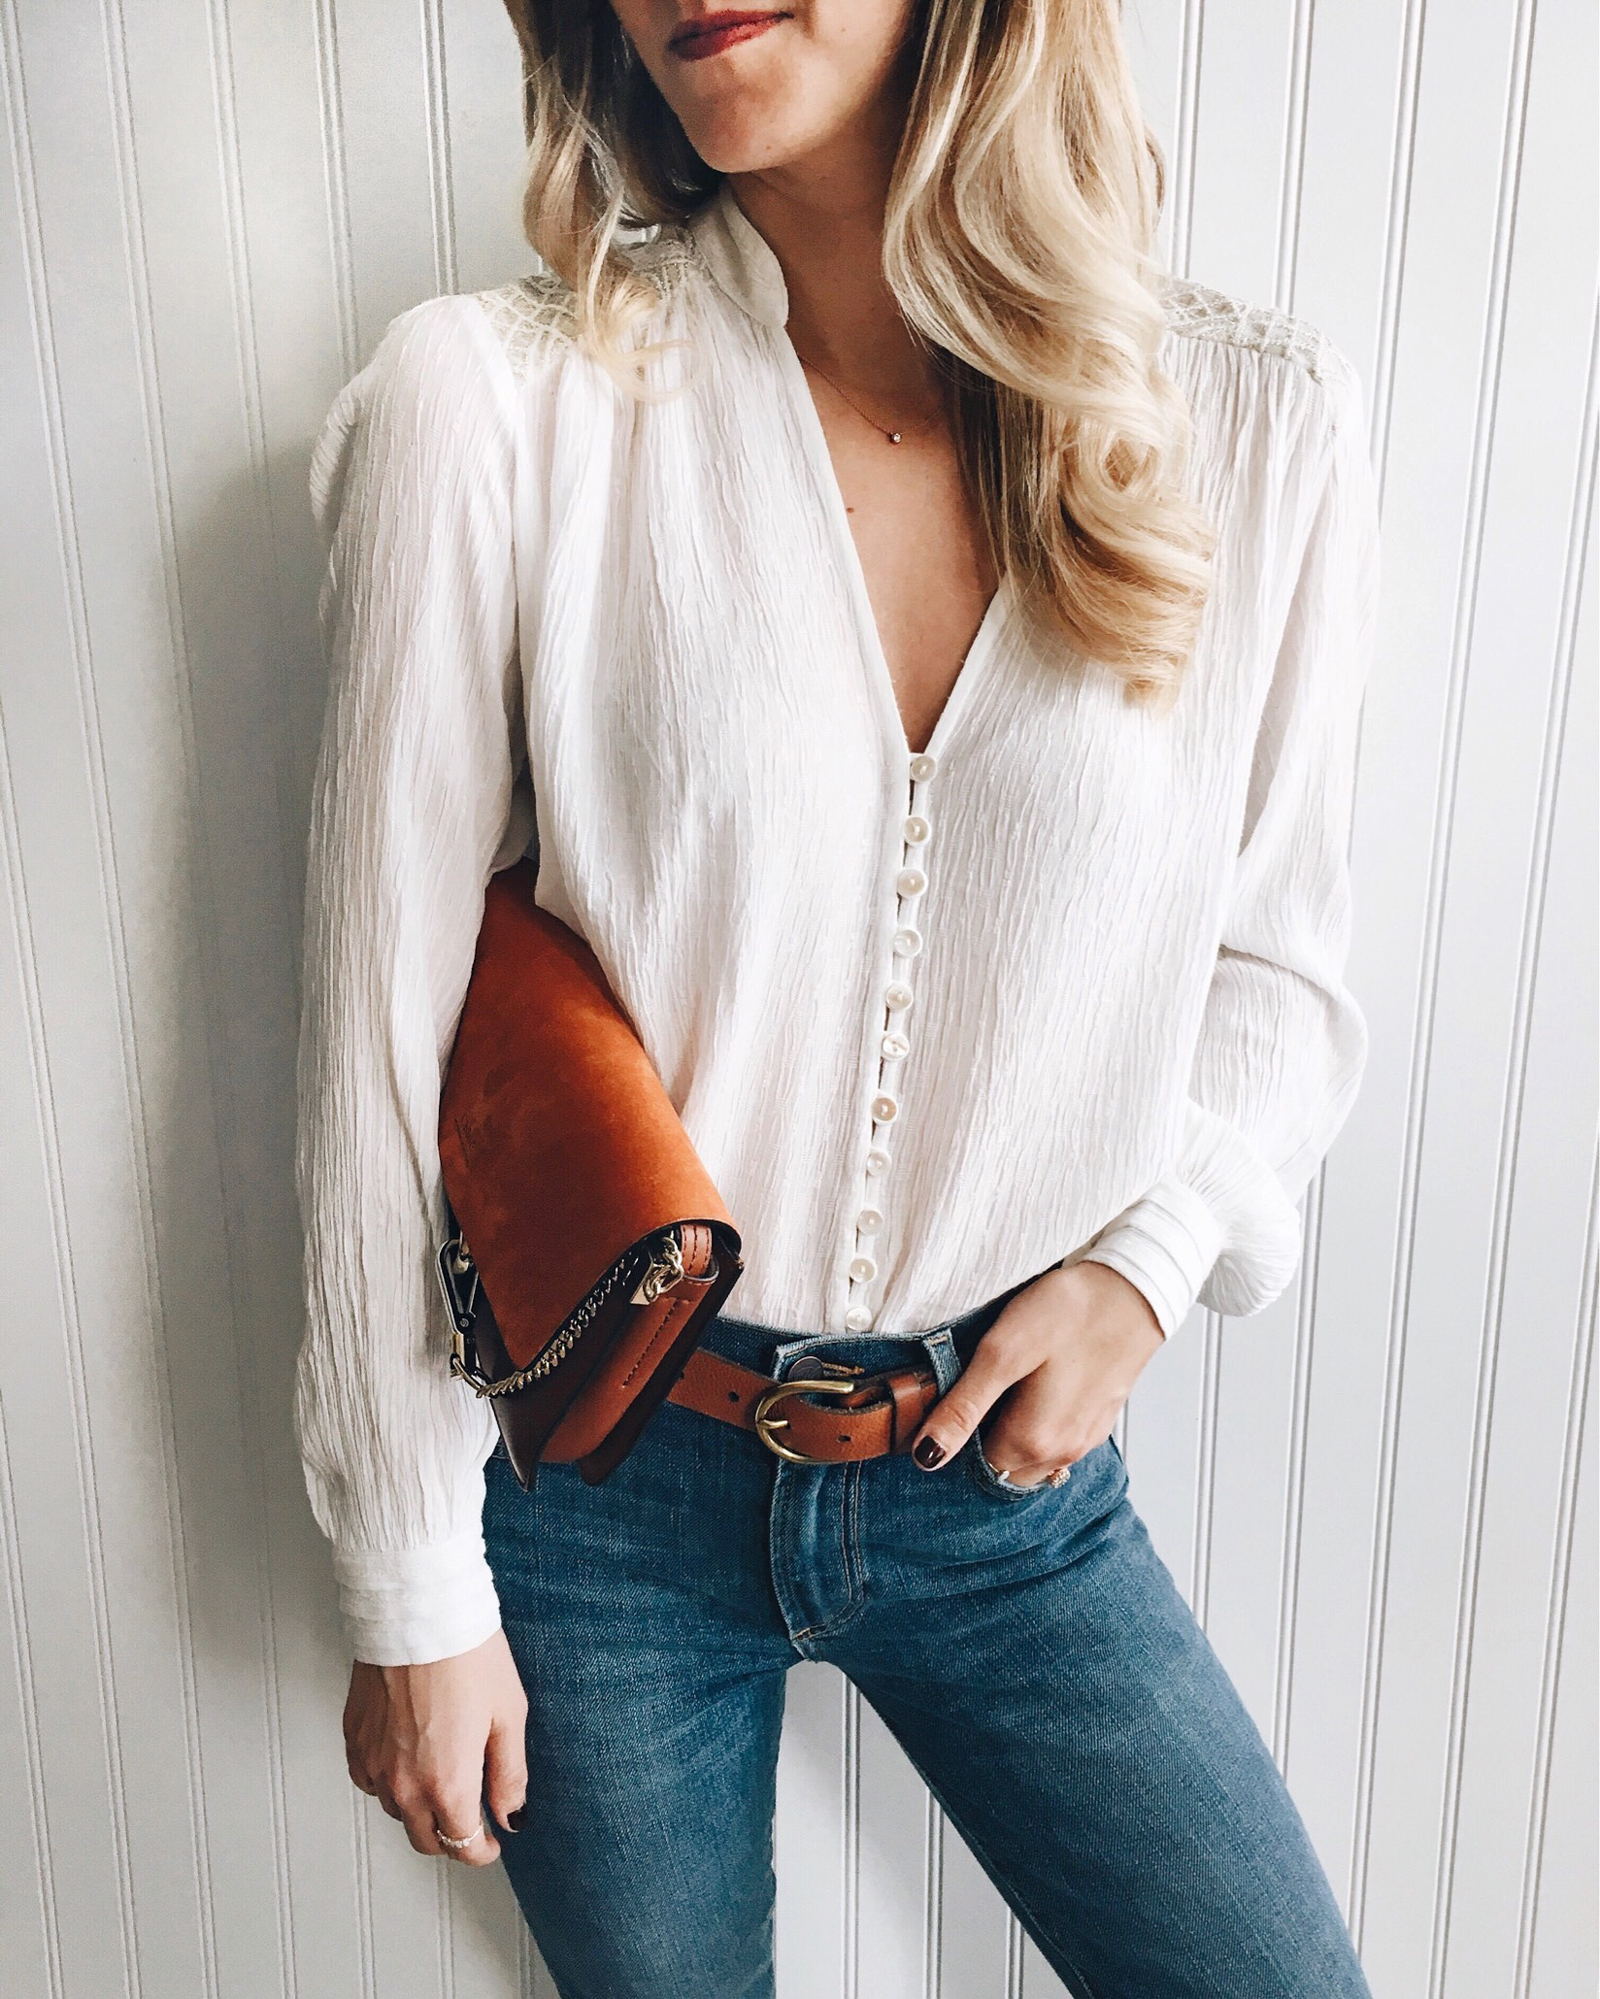 livvyland-blog-olivia-watson-instagram-roundup-austin-texas-cozy-winter-outfit-chic-white-blouse